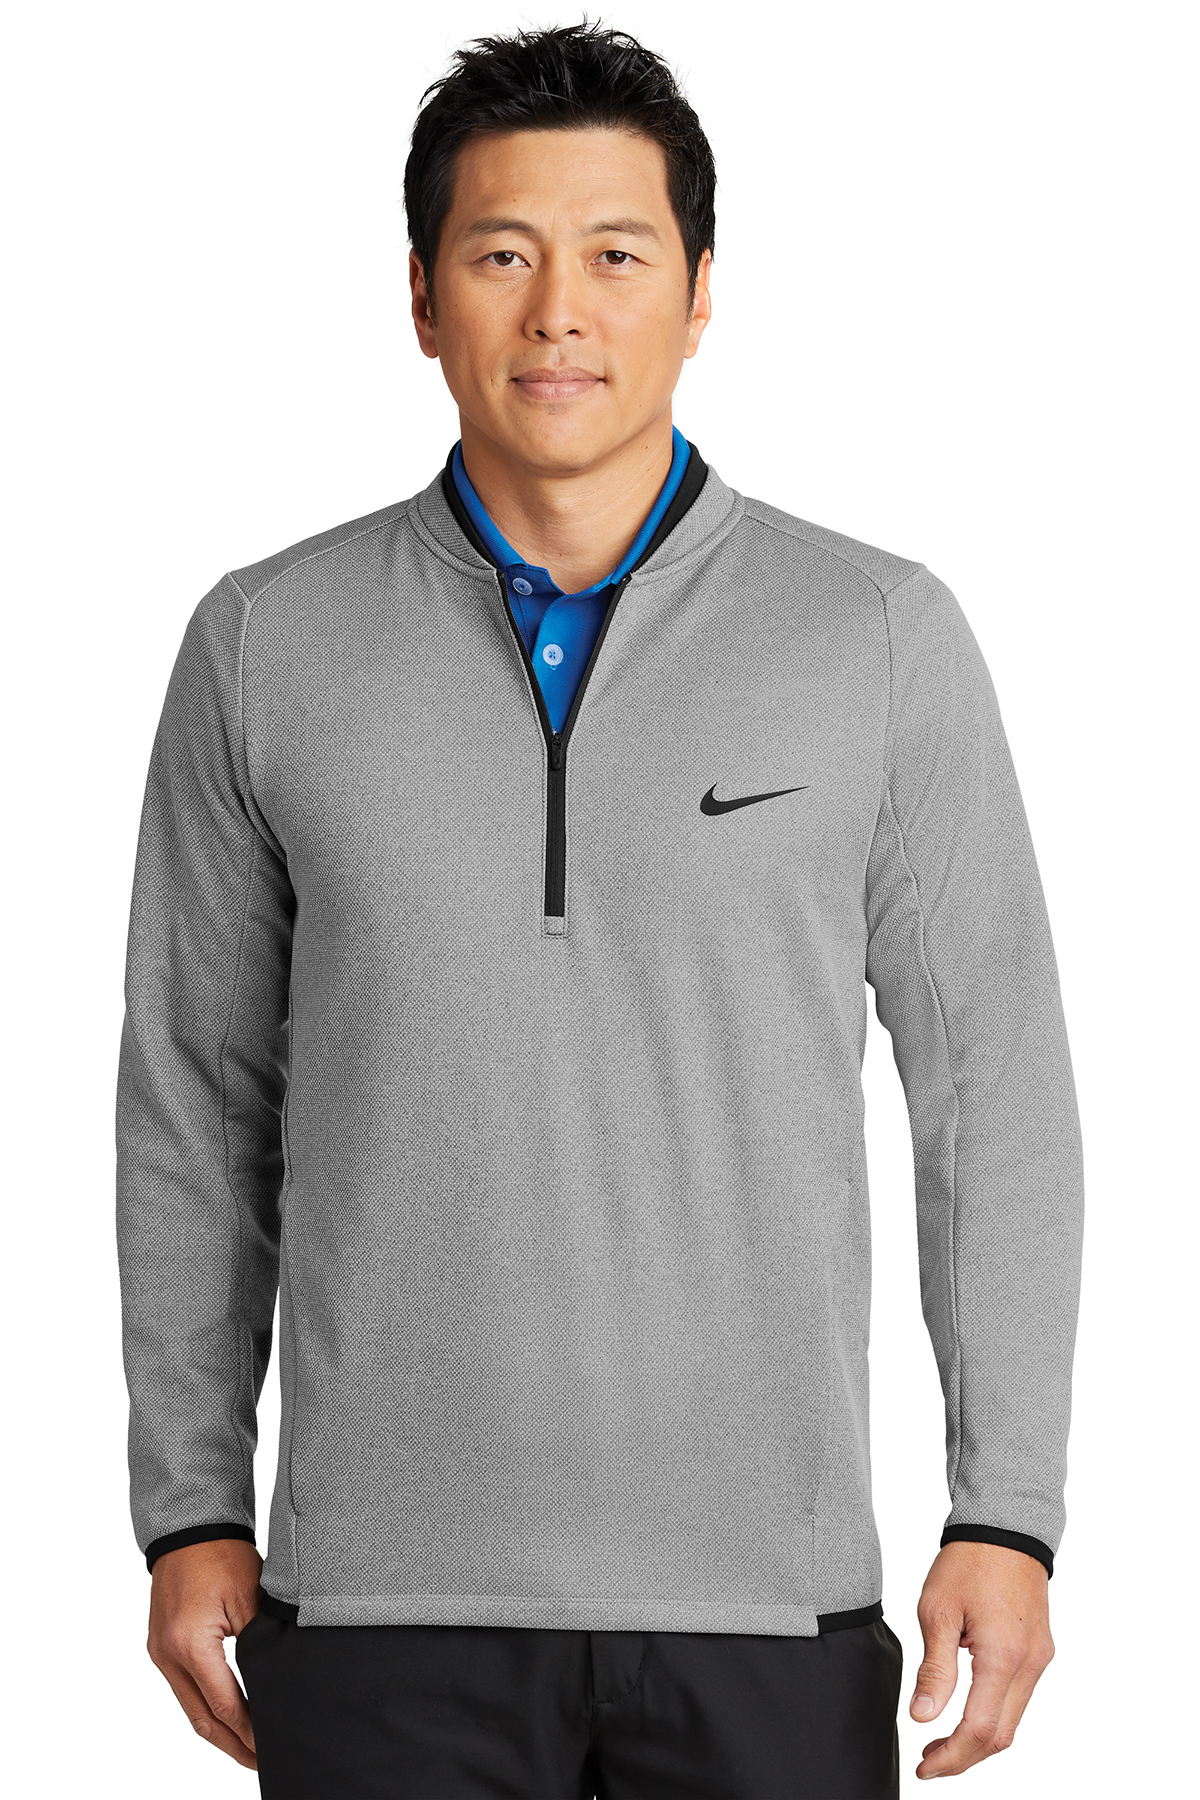 Nike Golf NKAH6267 - Nike Therma-FIT Textured Fleece 1/2-Zip